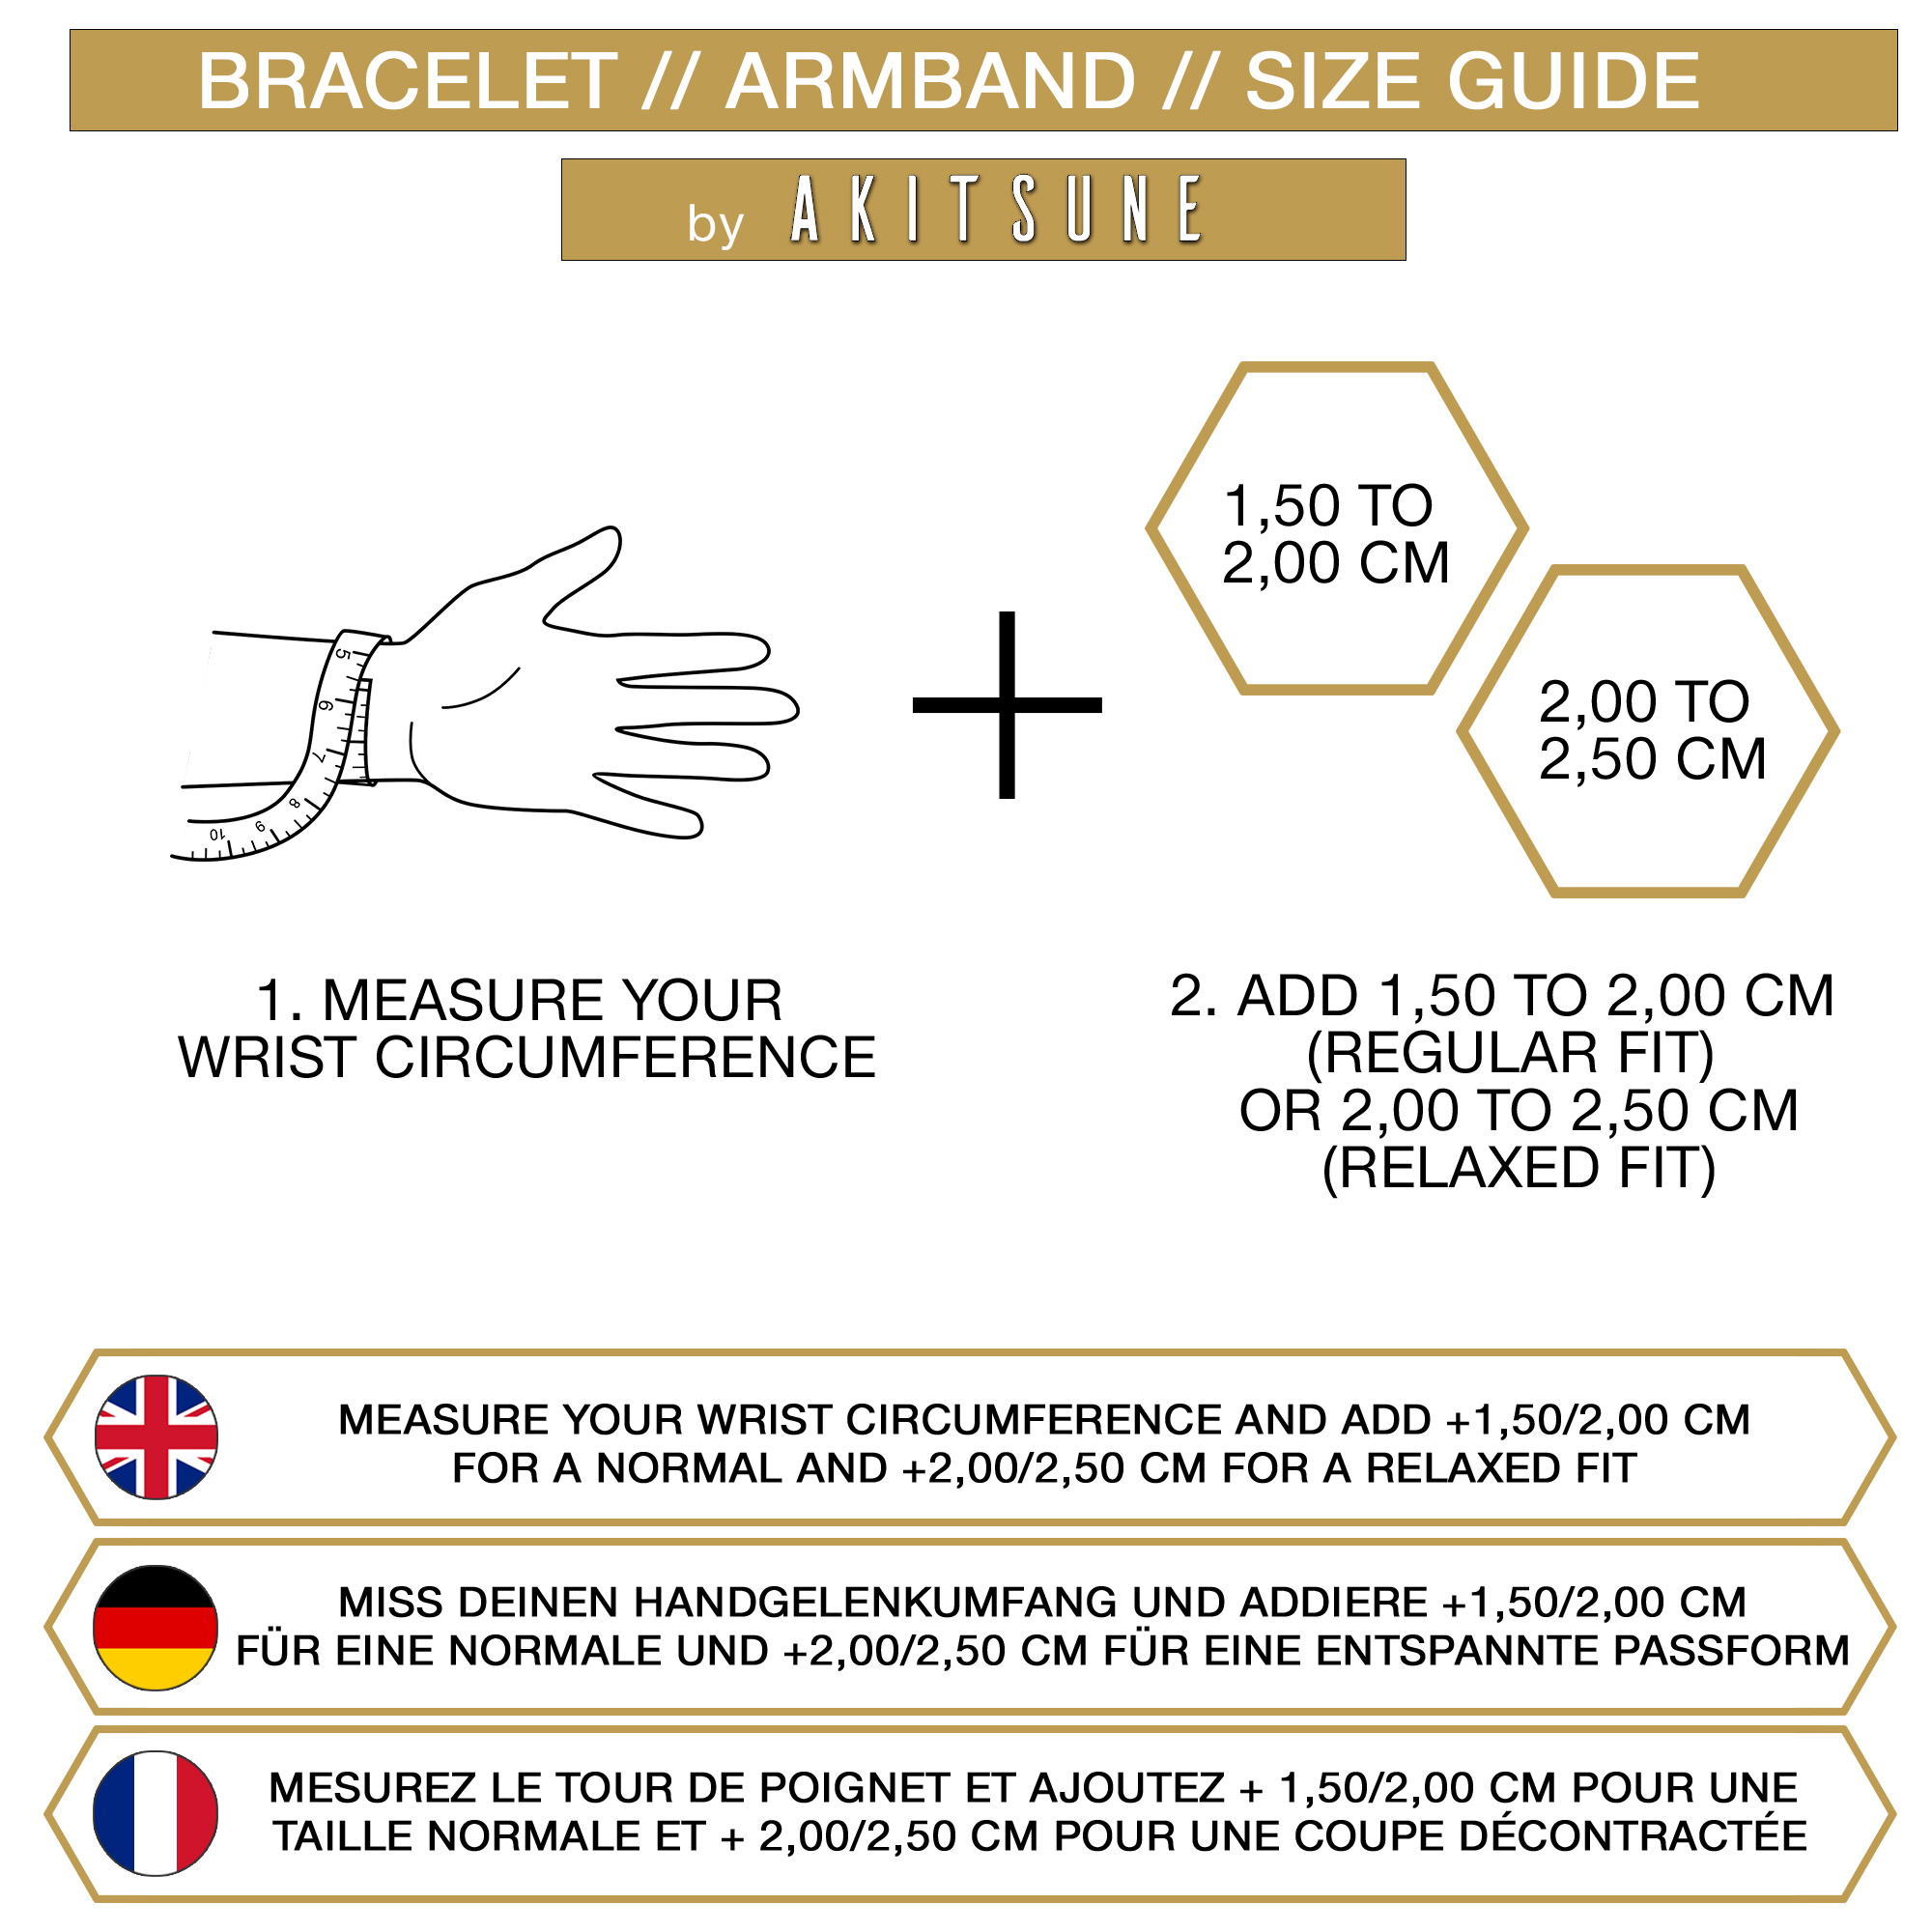 Bracelets-Size-Chart-Amazon-1-50-2-00cm-to-2-00-2-50cm